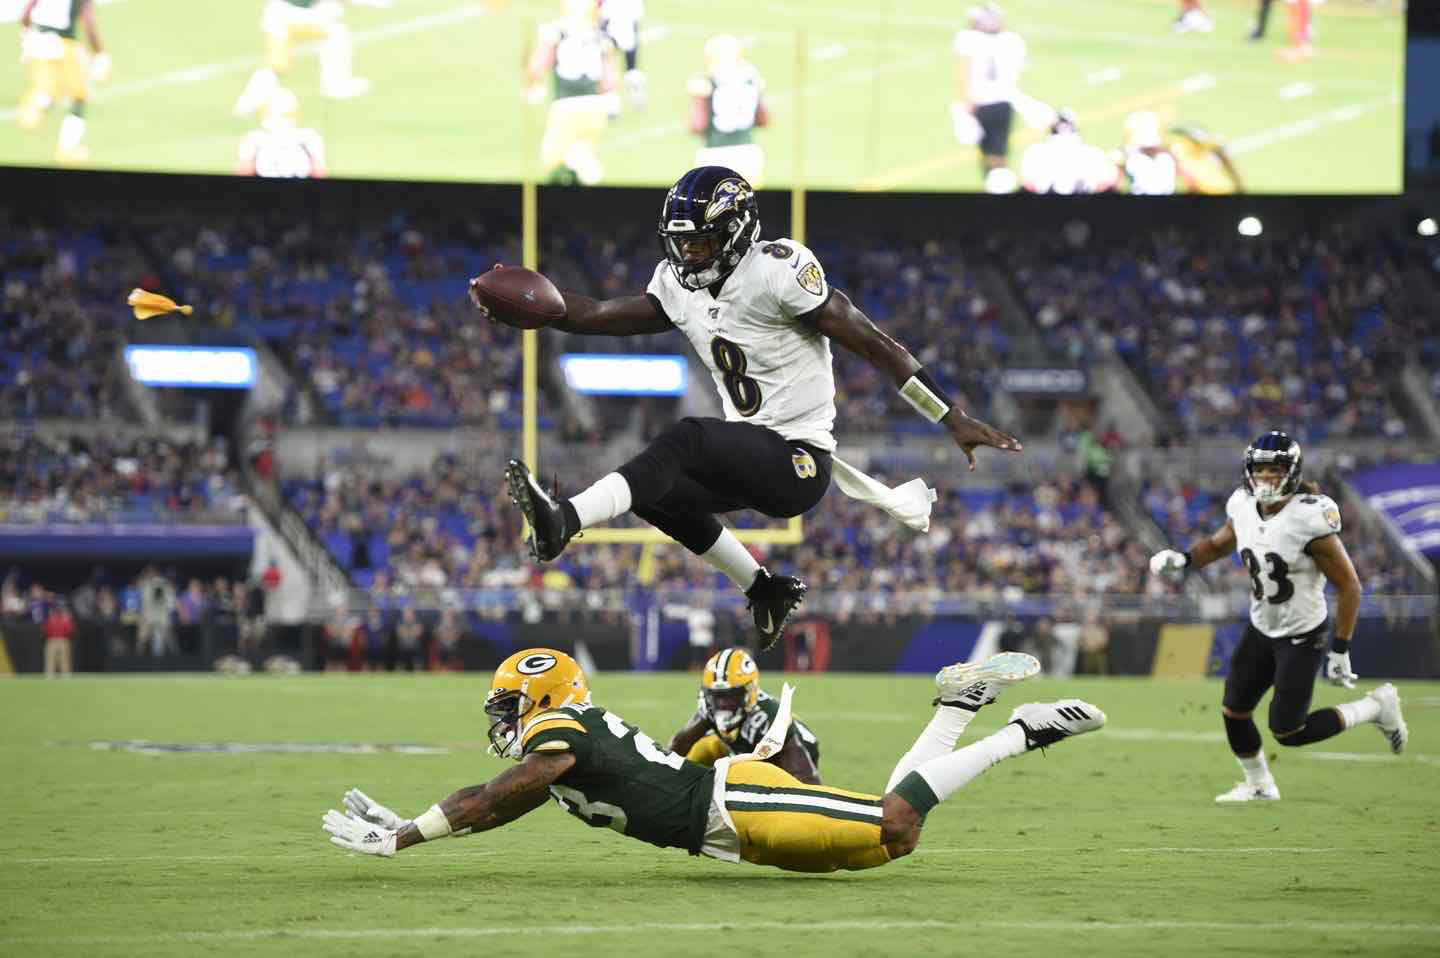 Week 9 is heating up, and the NFL season is halfway through. Find out the TV schedule for this week's NFL games.